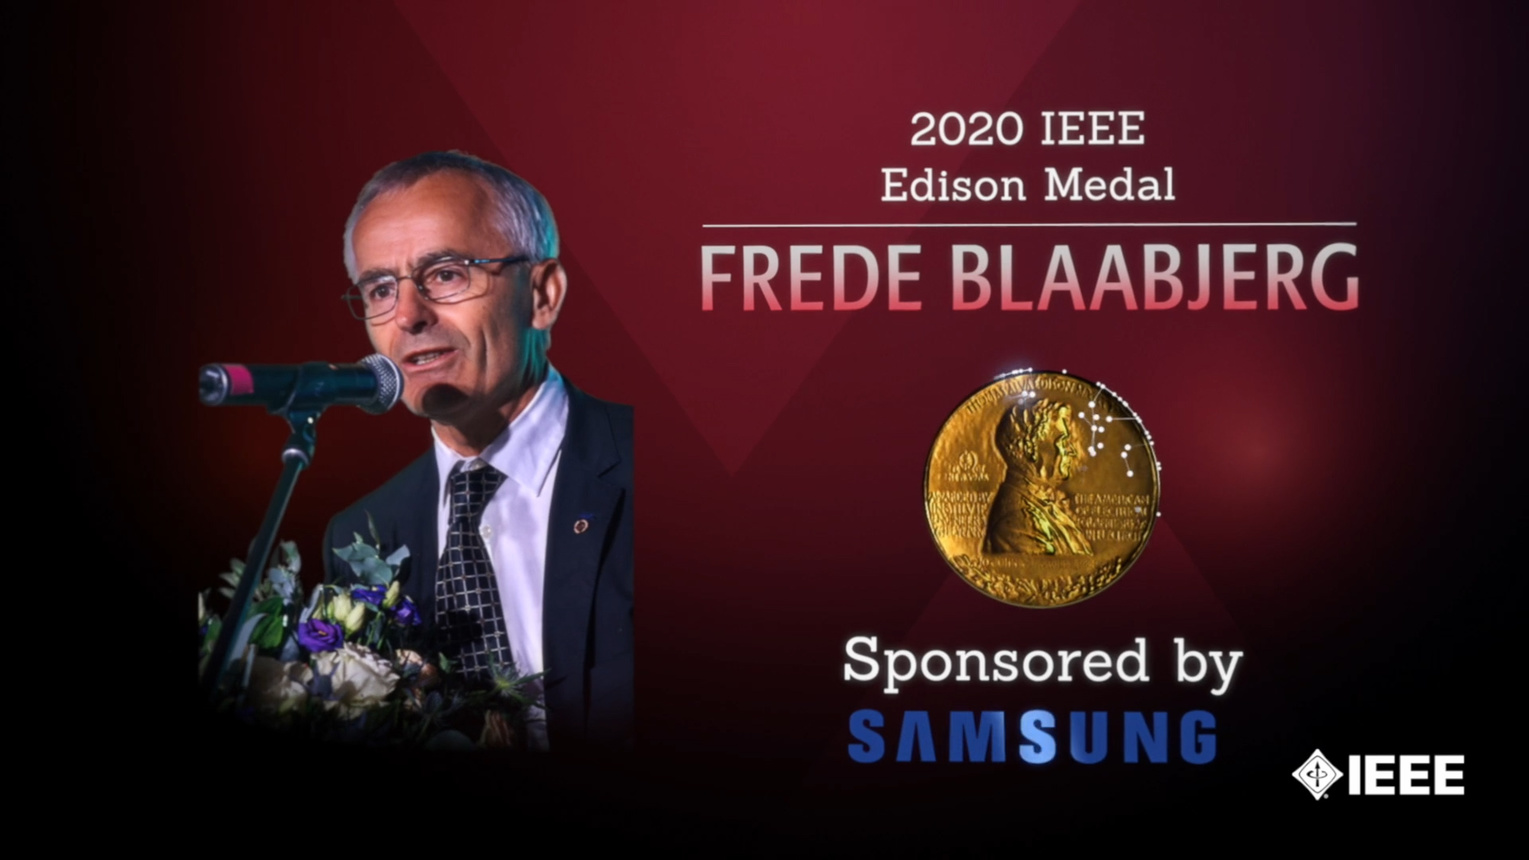 Honors 2020: Frede Blaabjerg Wins the IEEE Edison Medal